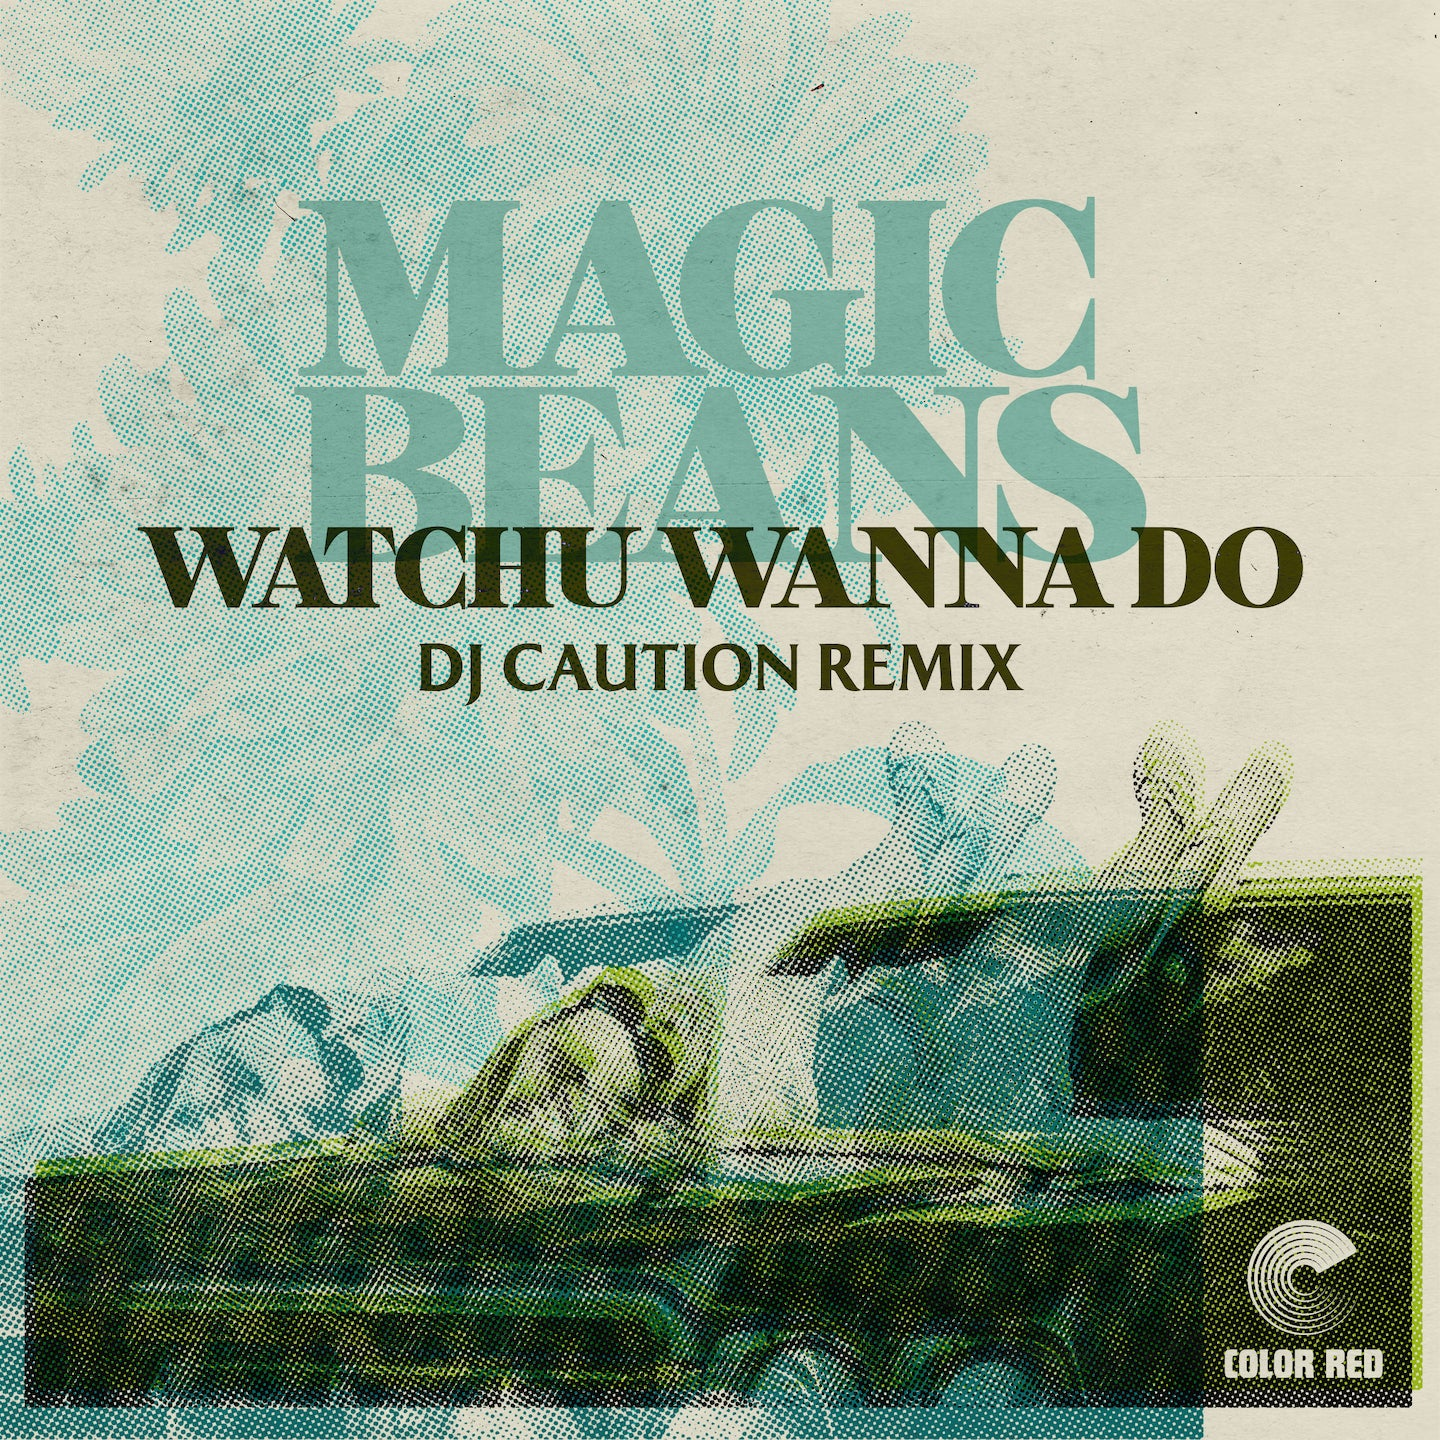 Watchu Wanna Do (DJ Caution Remix)